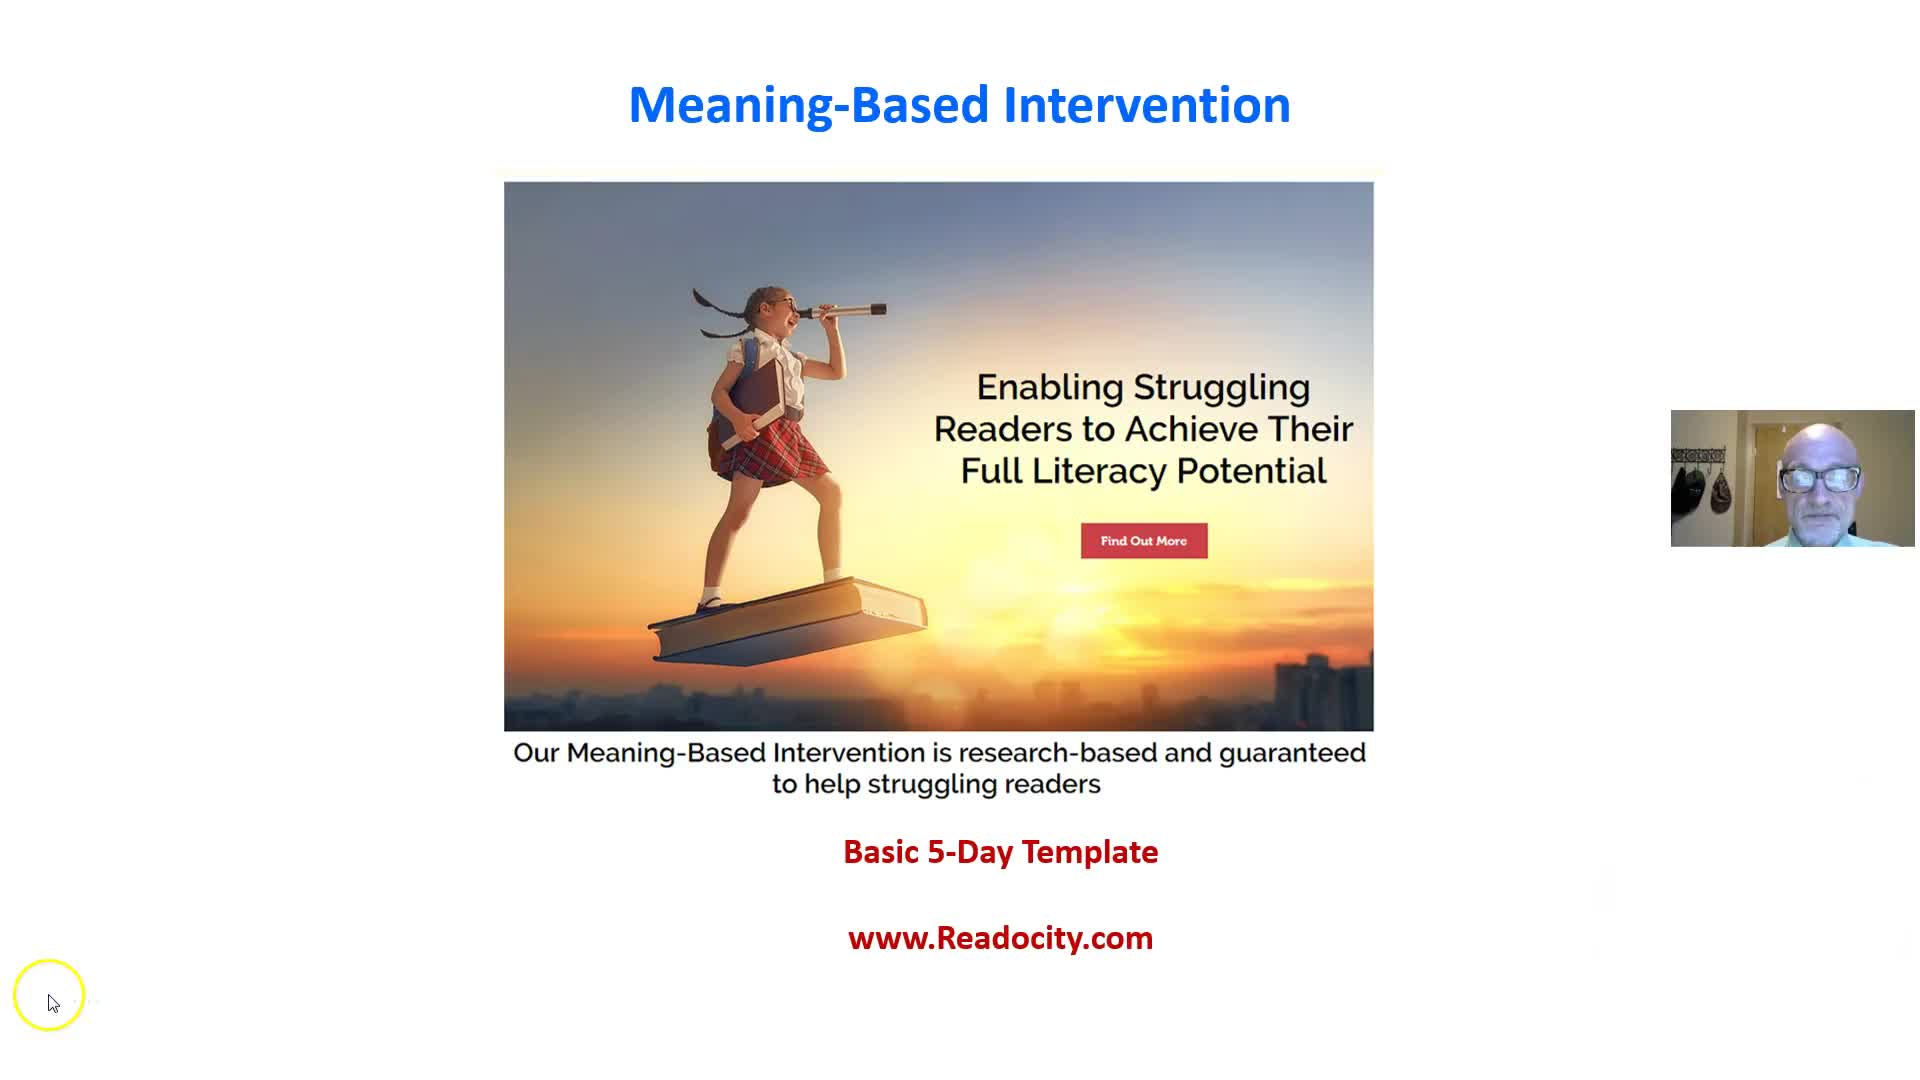 TEMPLATE FOR BASIC 5-DAY READING INTERVENTION